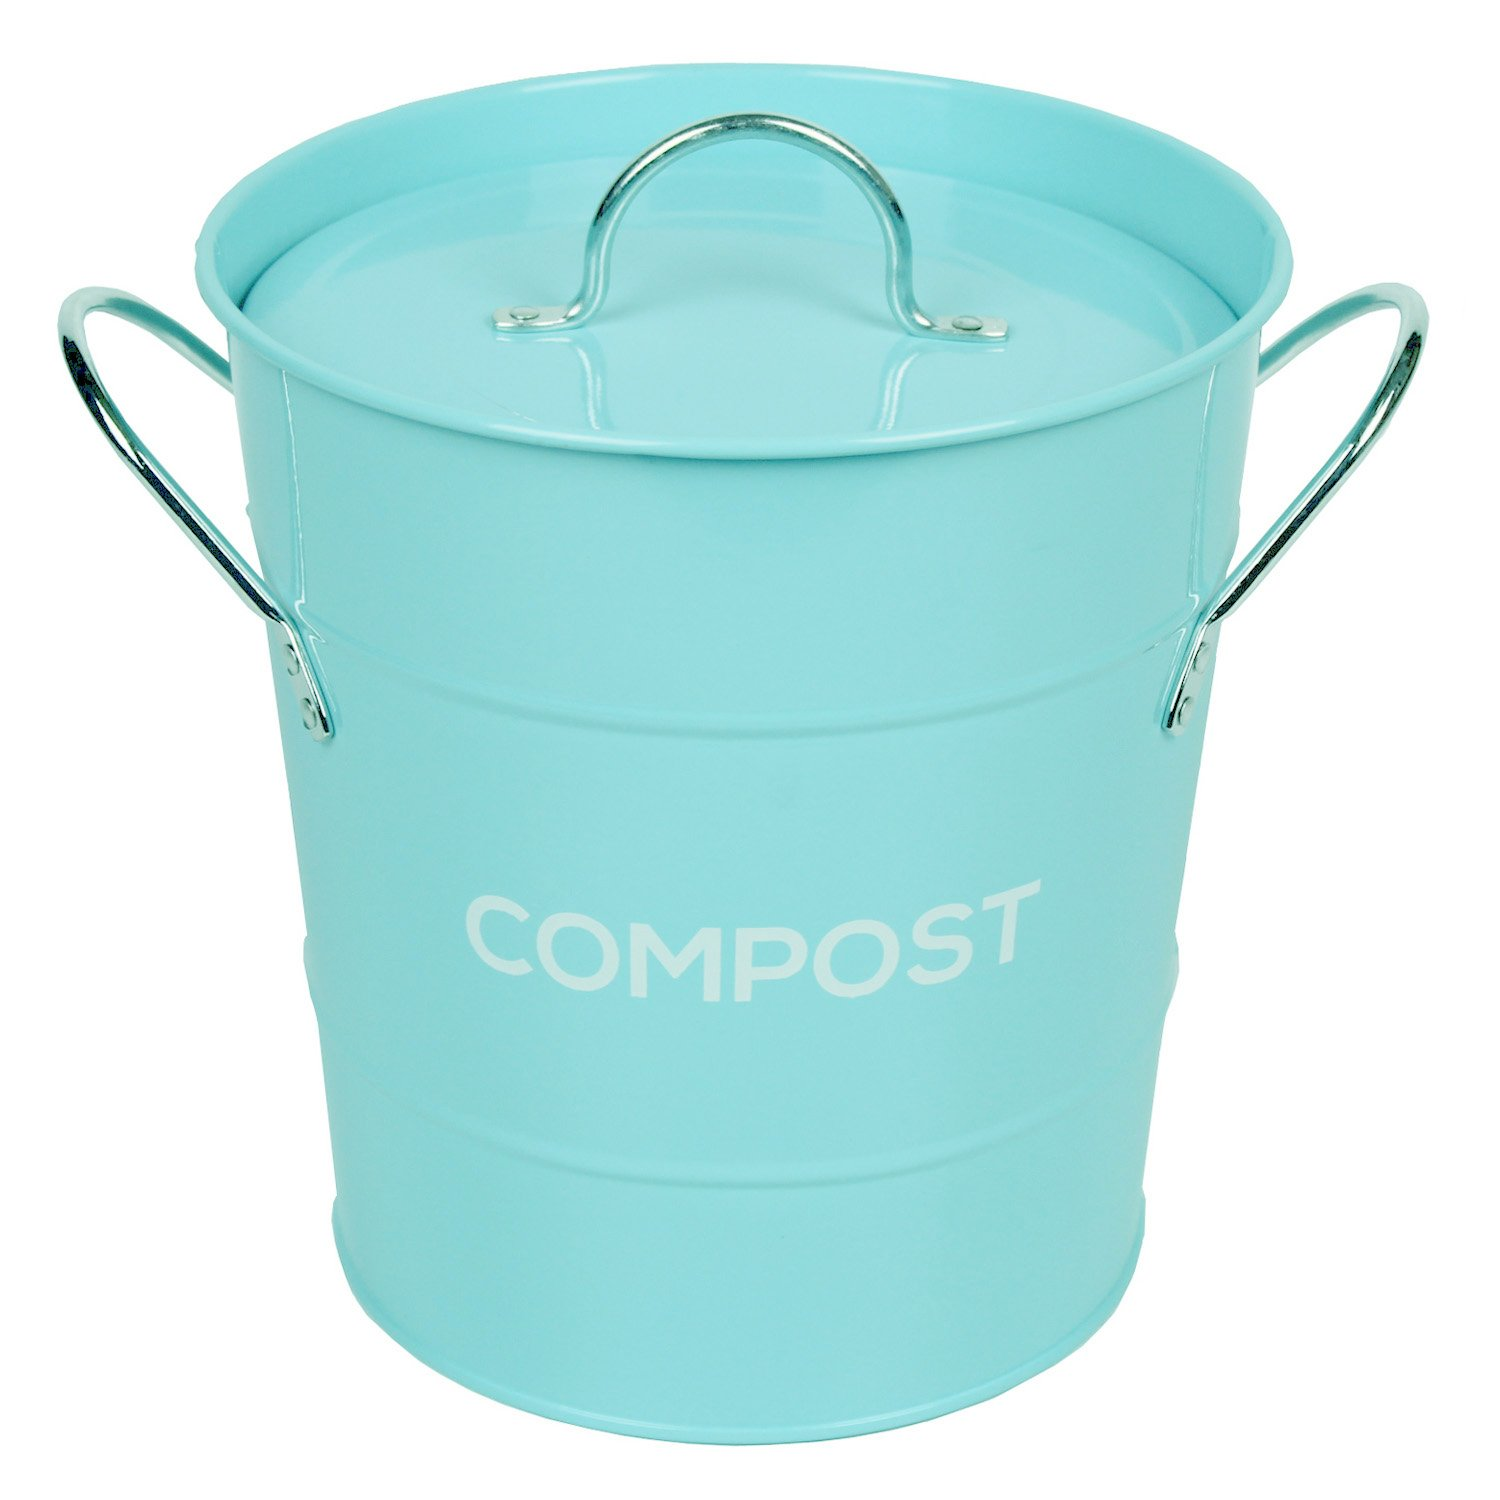 Elegant Amazon.com: Light Blue Metal Kitchen Compost Caddy   Composting Bin For  Food Waste Recycling By The Caddy Company: Appliances